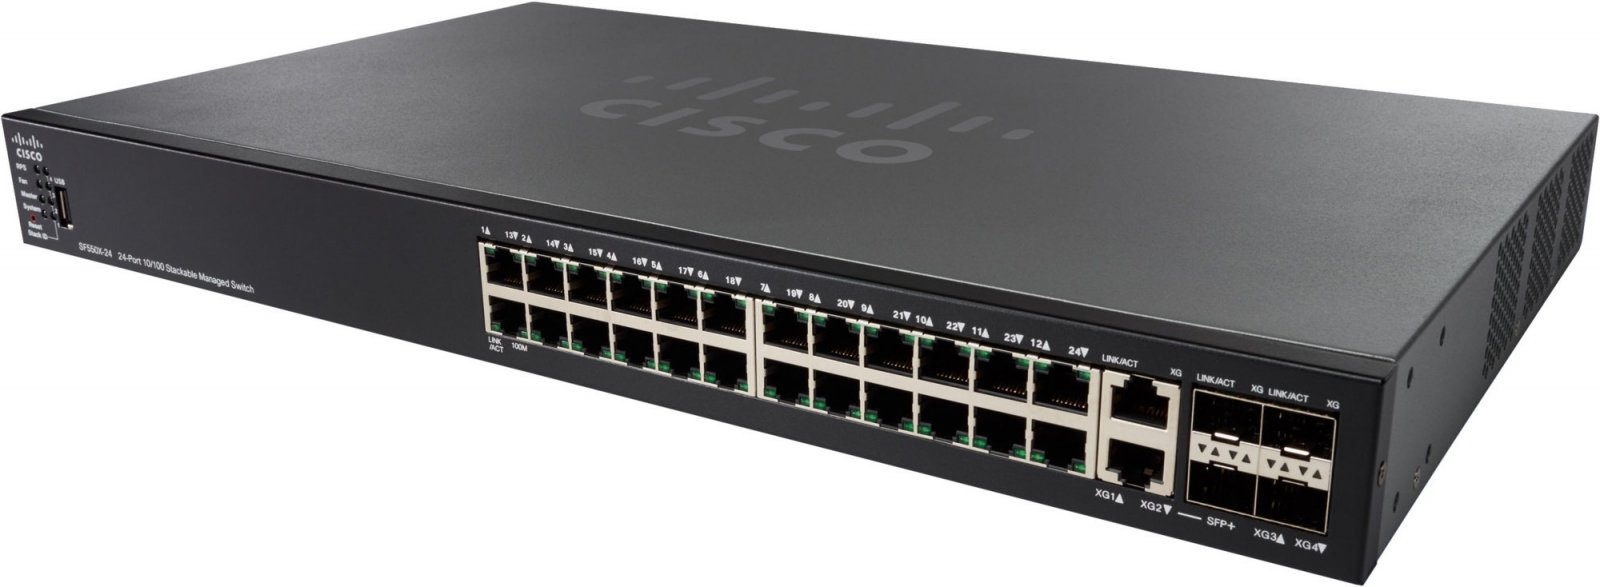 Cisco 24-port 10/100 Stackable Switch.SF550X-24/SF550X-24-K9